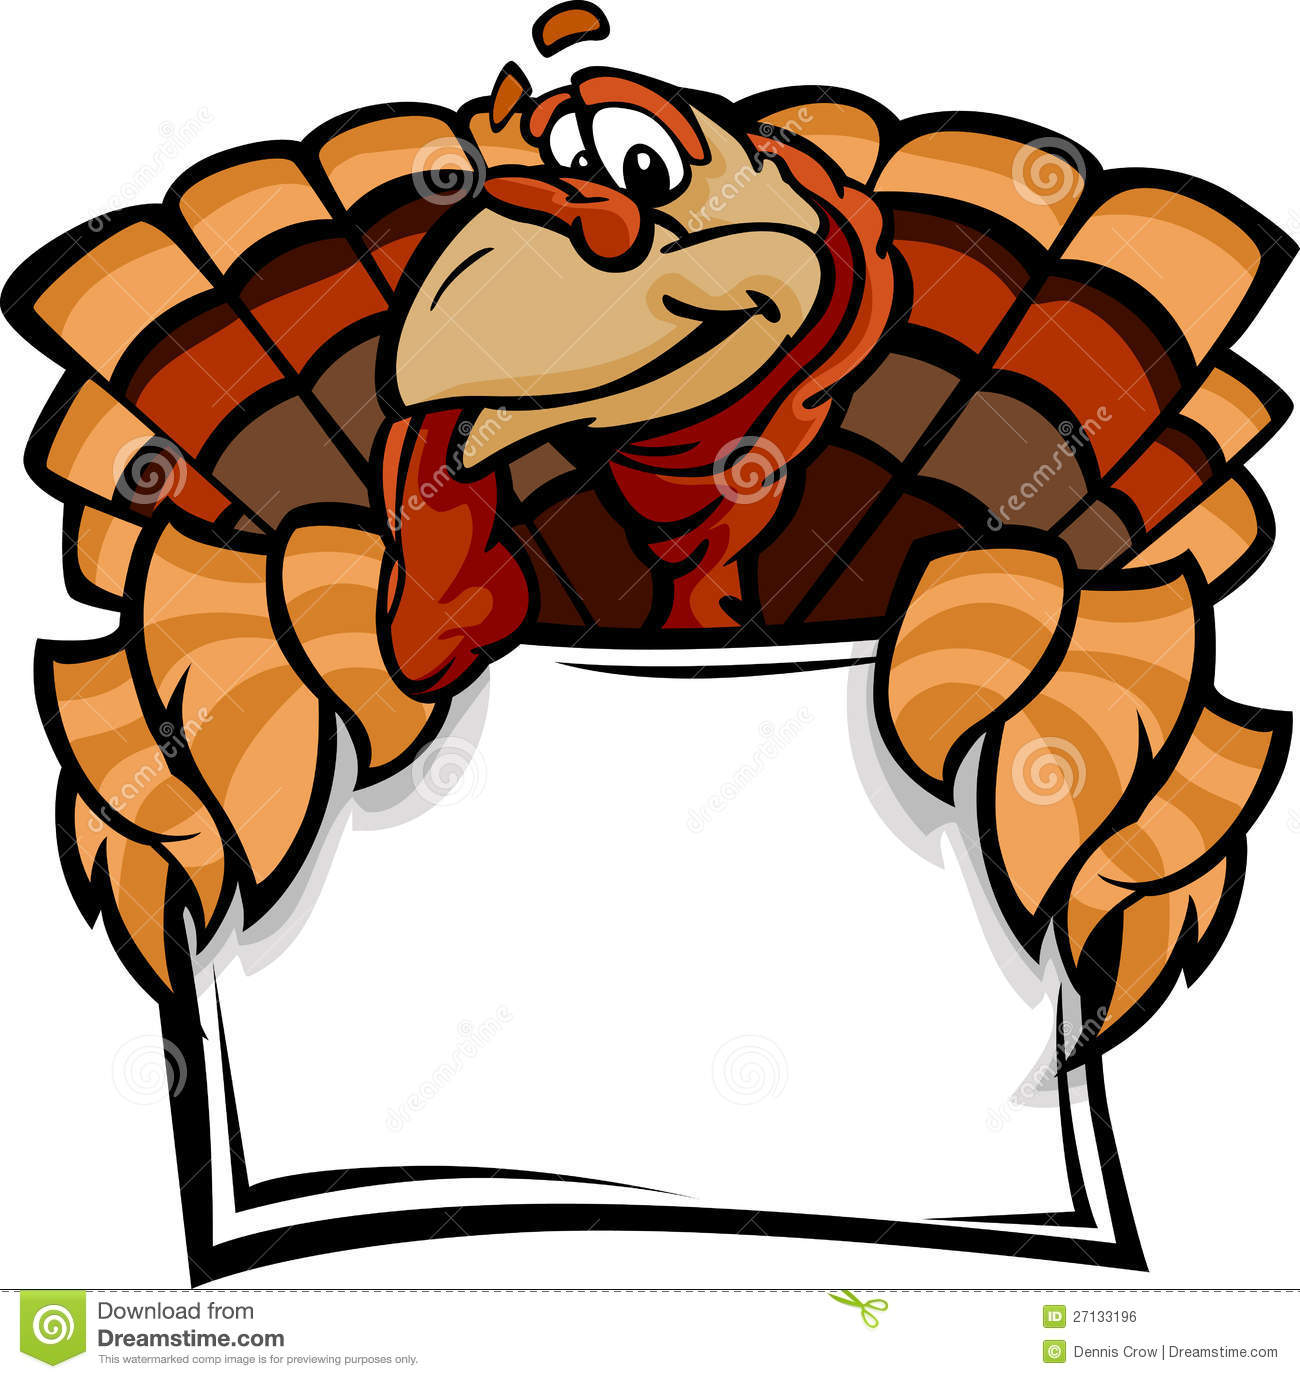 turkey clipart at getdrawings com free for personal use turkey rh getdrawings com free animation clip art downloads free animated clipart for emails